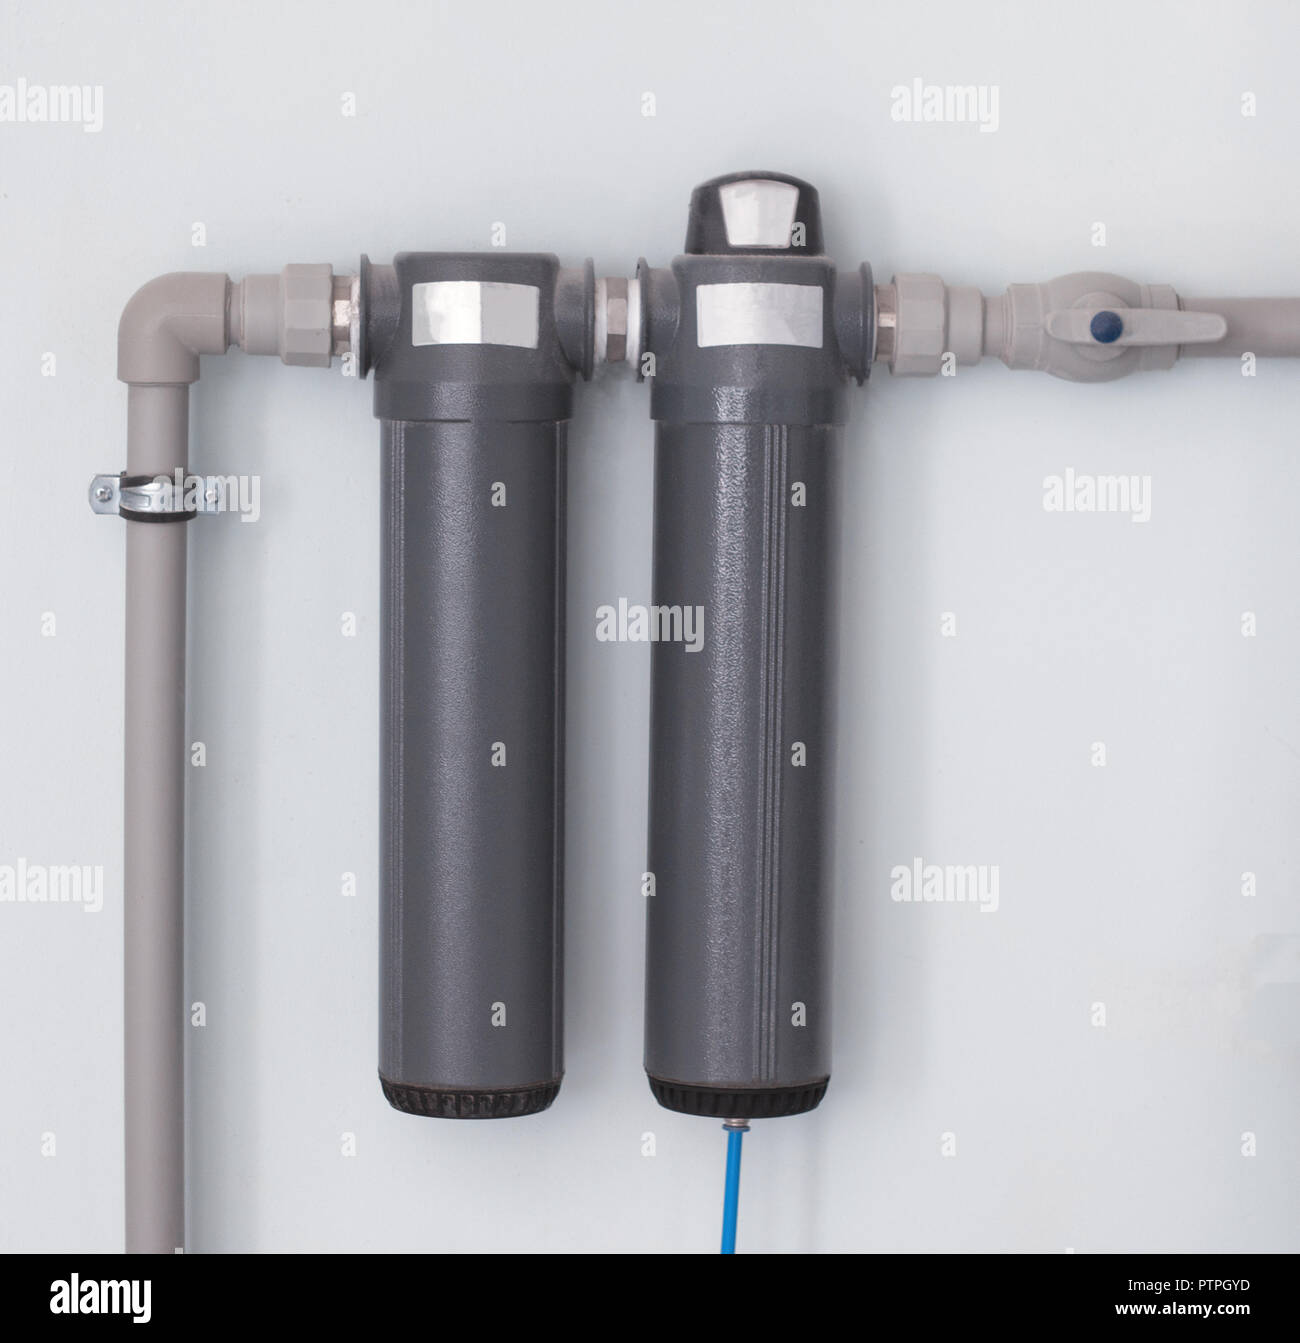 Two modern water filters for cleaning large amounts of water, water filters are located on the wall, close-up, water filter - Stock Image